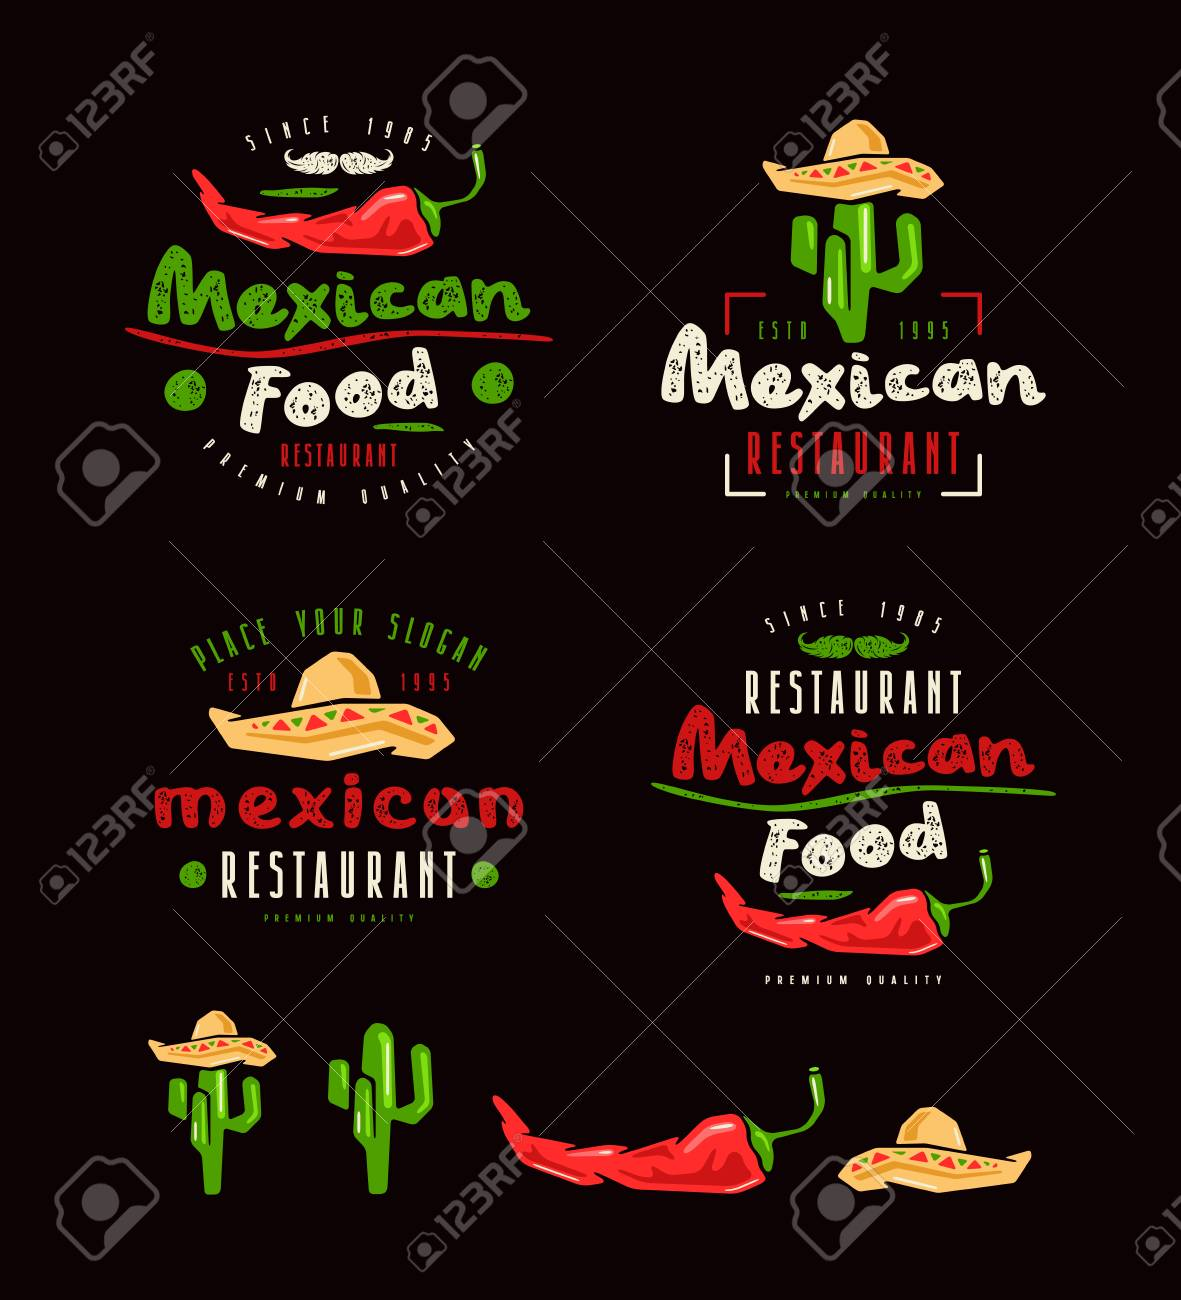 Mexican Food Labels 989bd349cc8